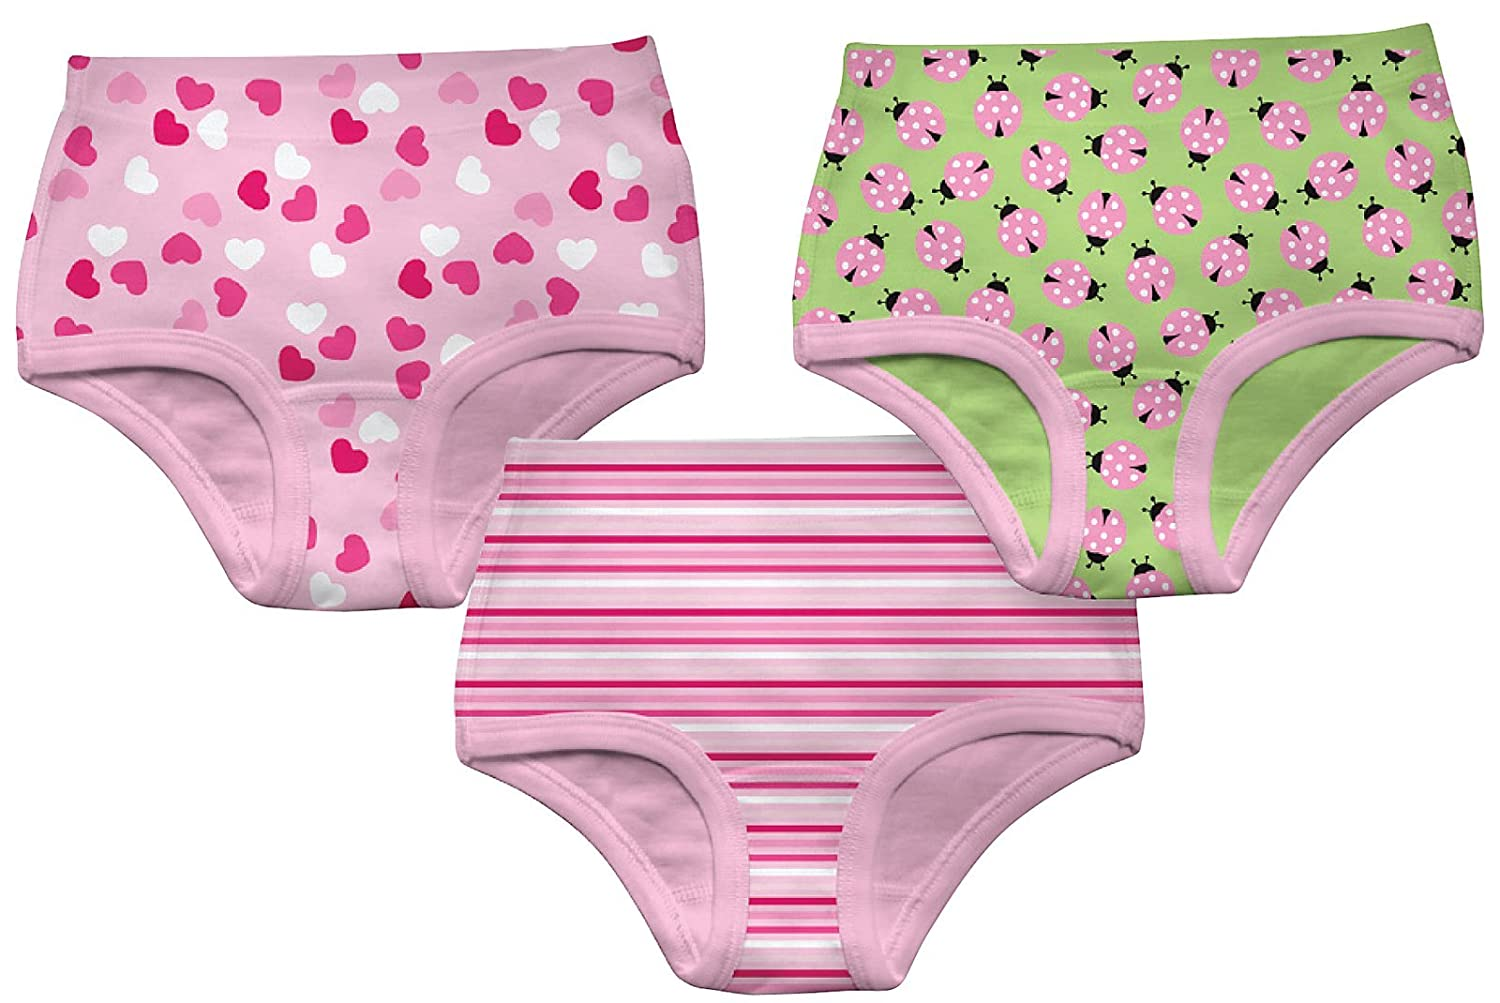 little girl in underwear at home images - usseek.com